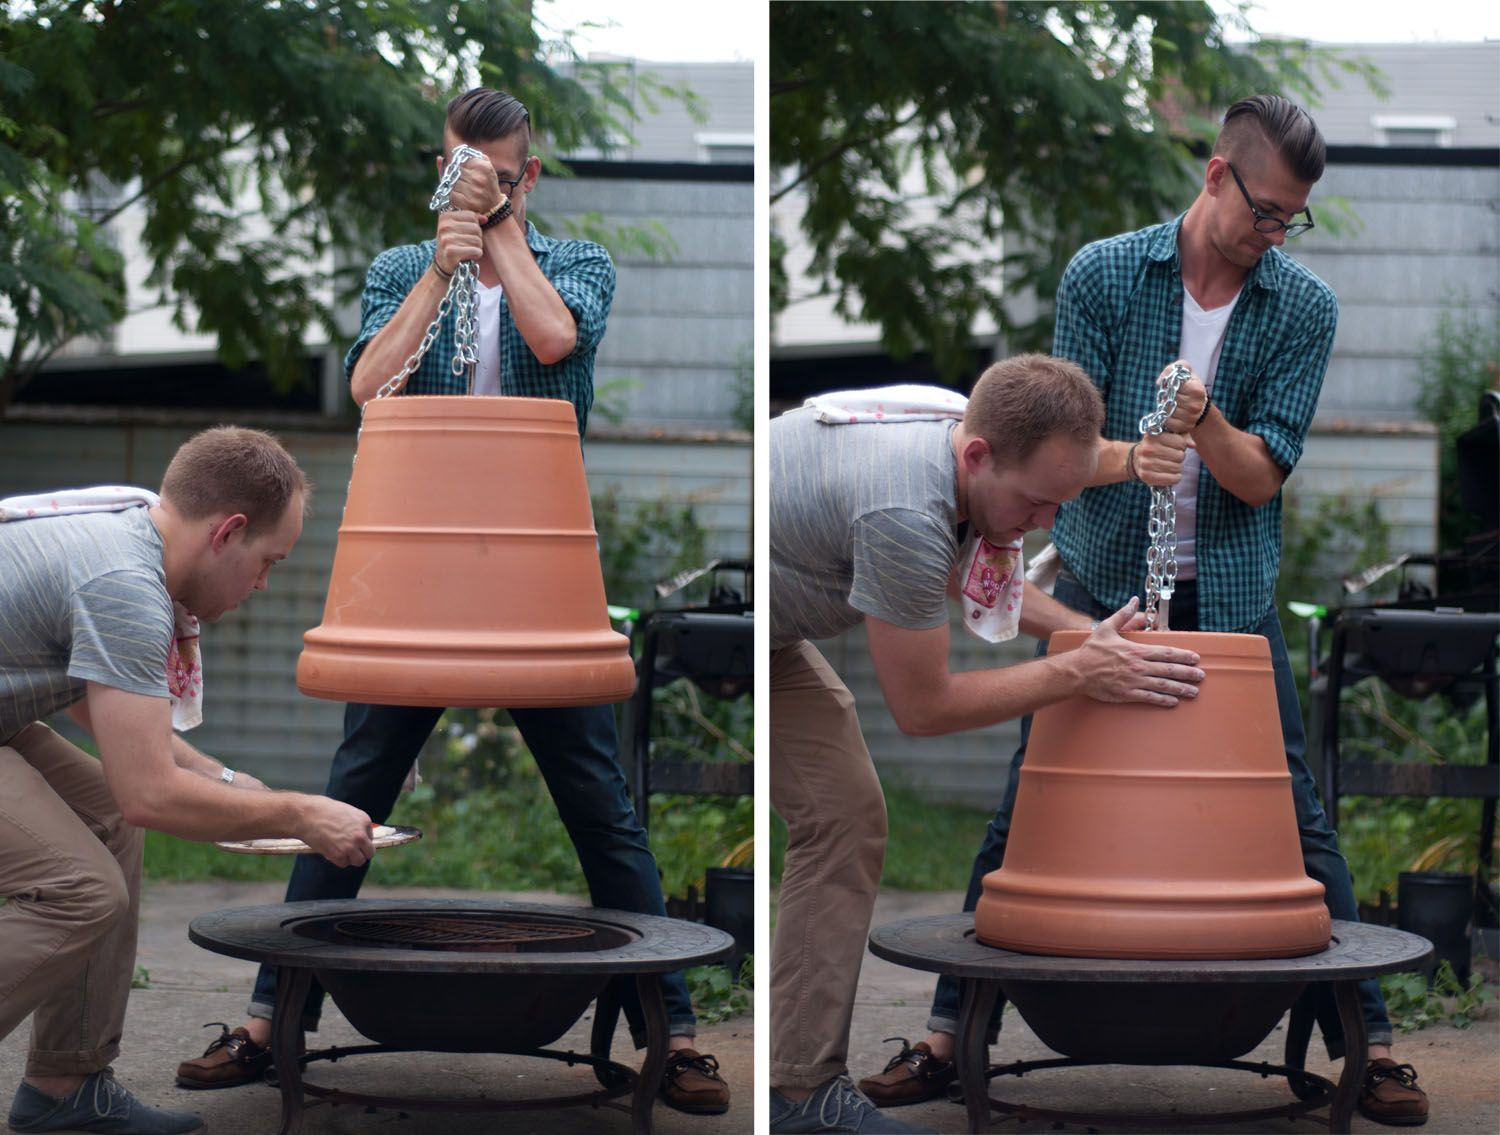 Homemade Pizza Oven. Interesting Idea. Iu0027d Have To Think Some More On